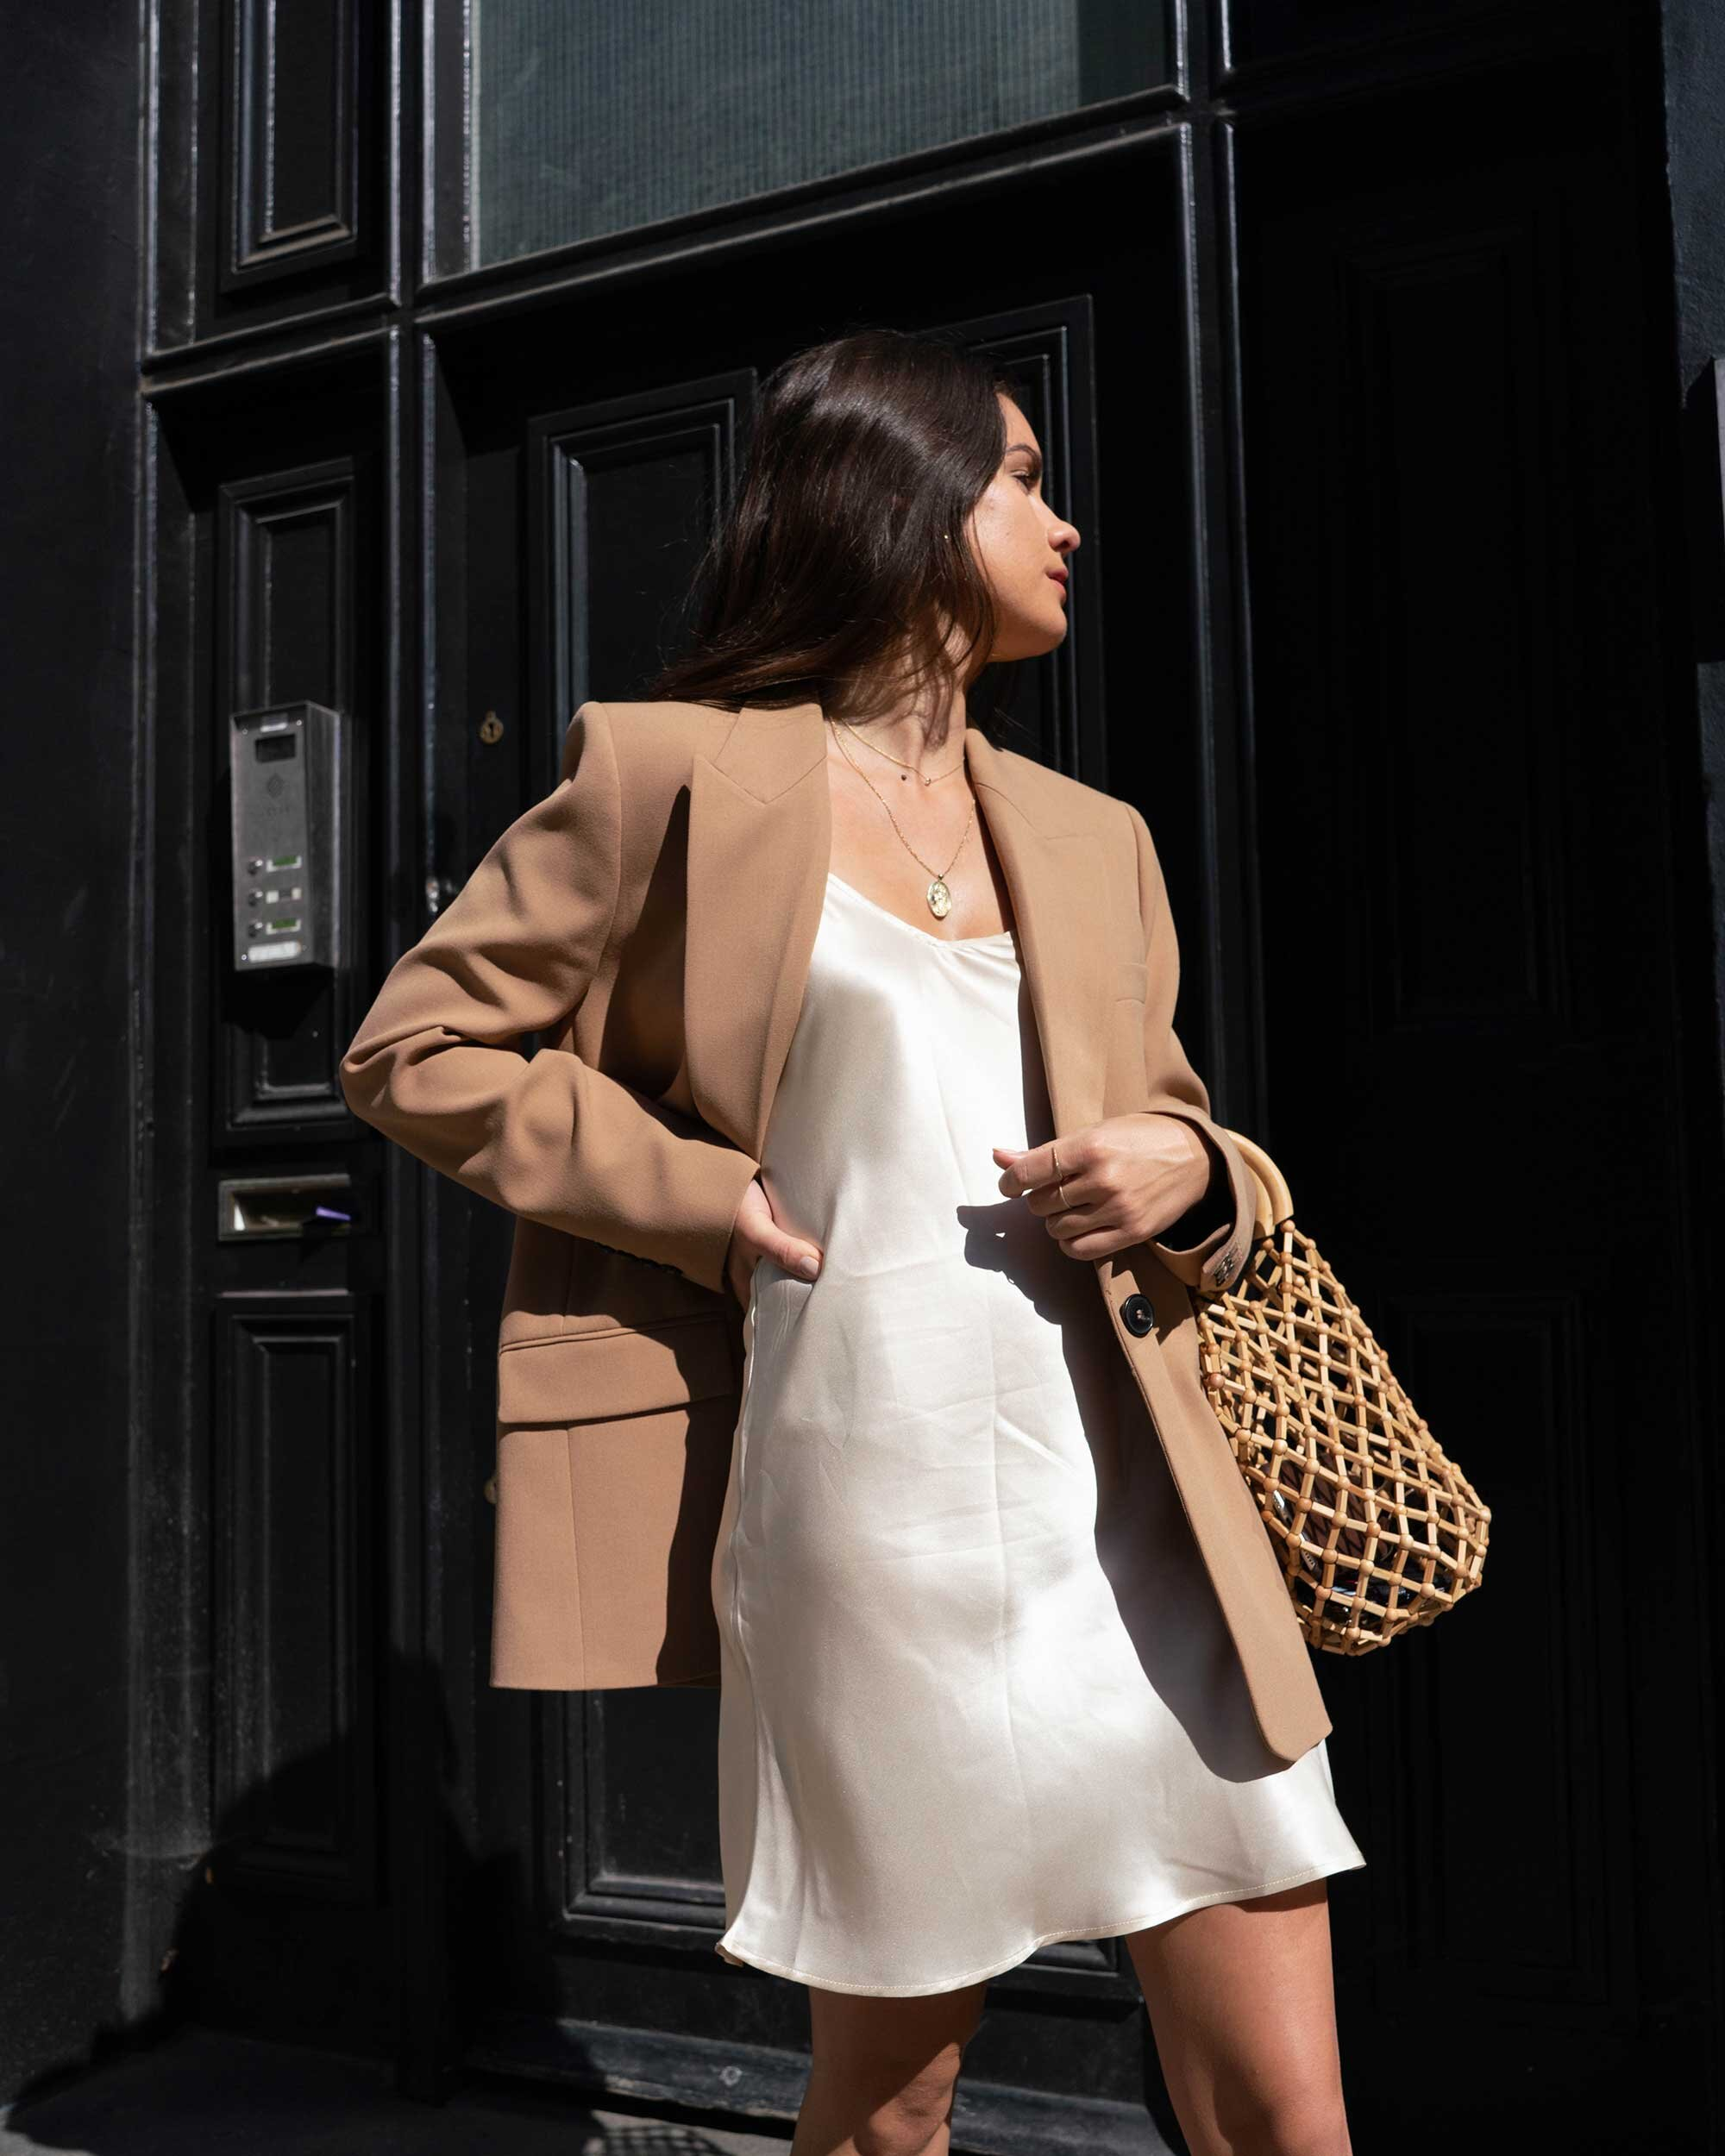 Sarah Butler of Sarah Styles Seattle wears ivory Slip dress and tan blazer in London | @sarahchristine -1.jpg